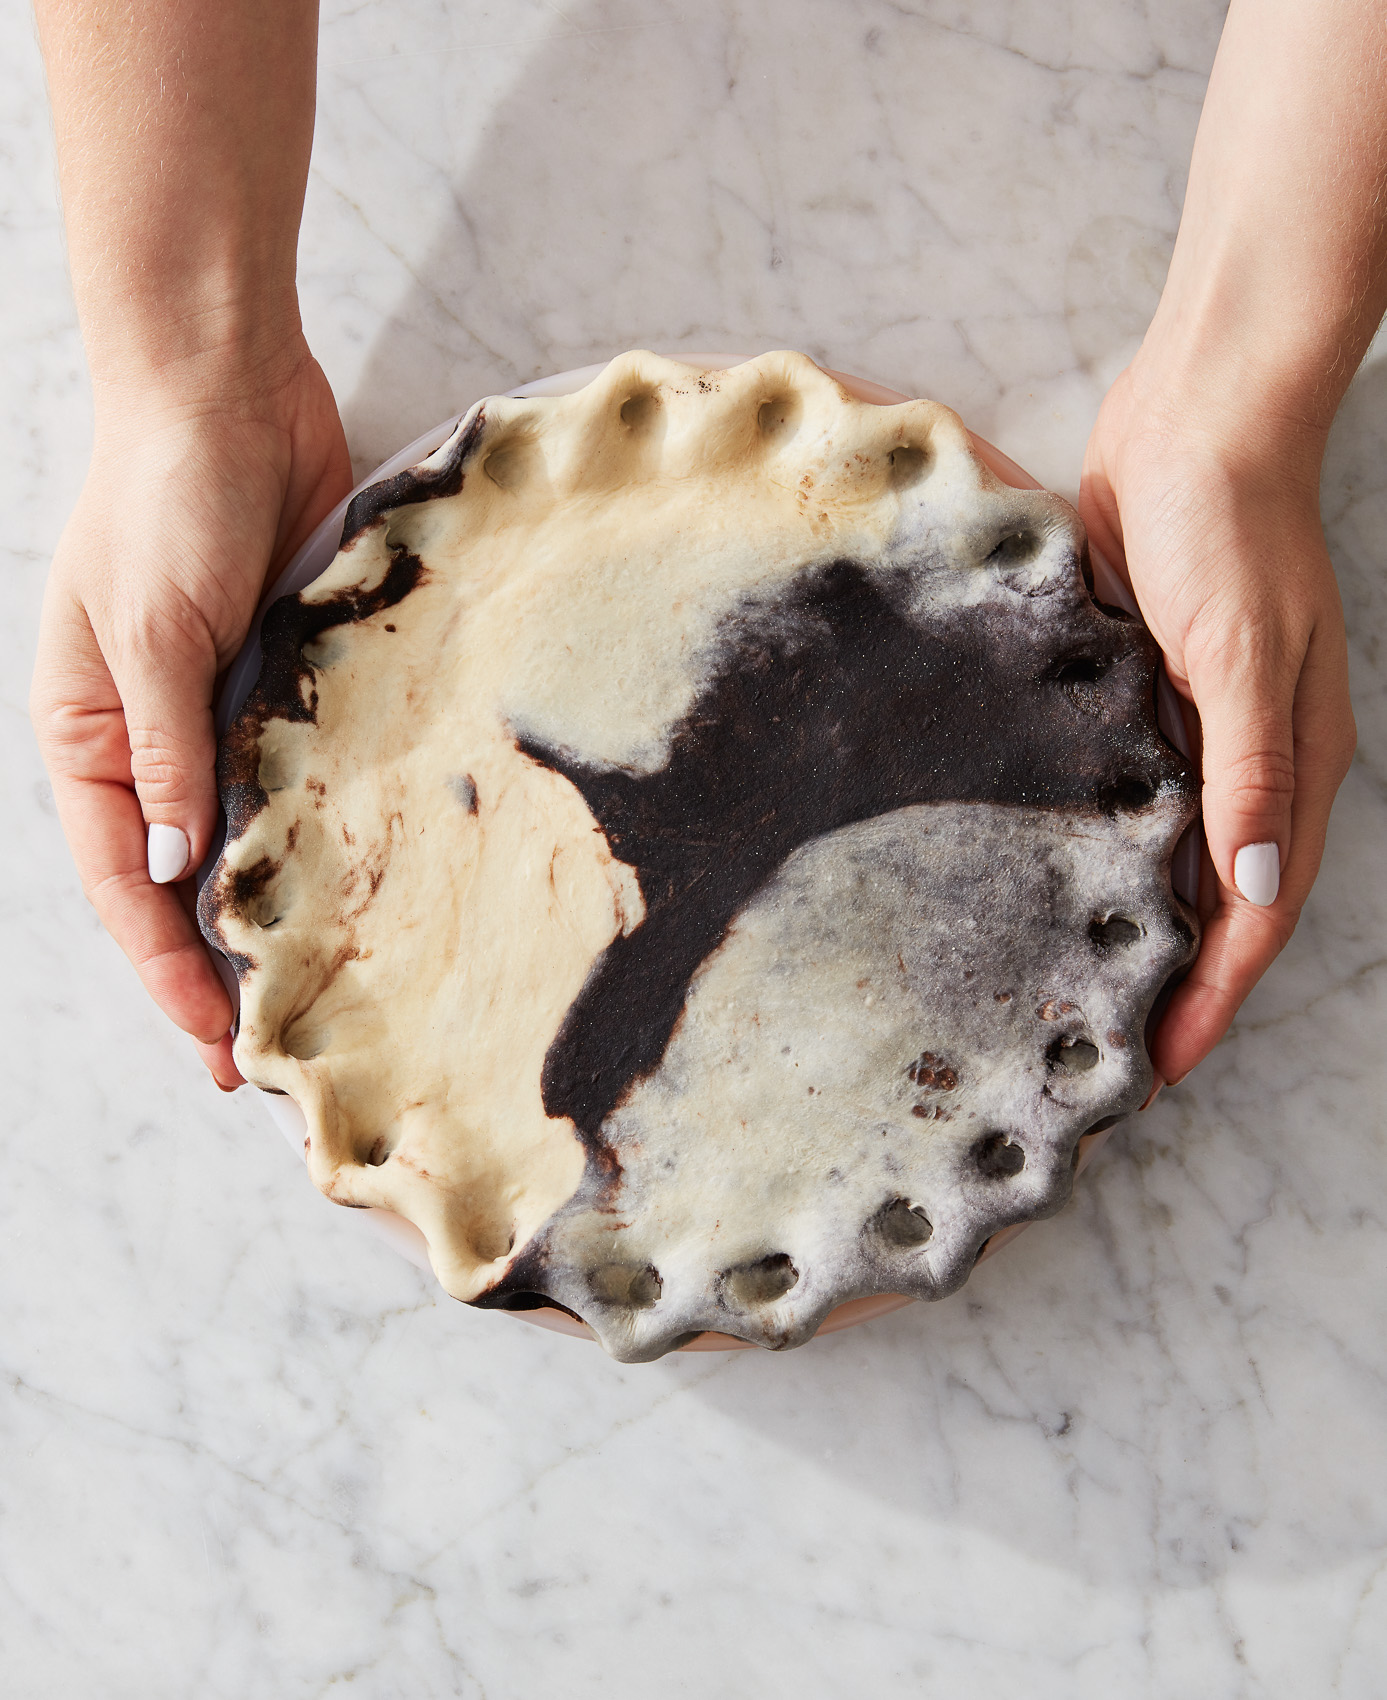 CH2_Top-Crust-Options-1-Marbled-Dough_erin-mcdowell_book-on-pie_2019-11-04_mark-weinberg_1018